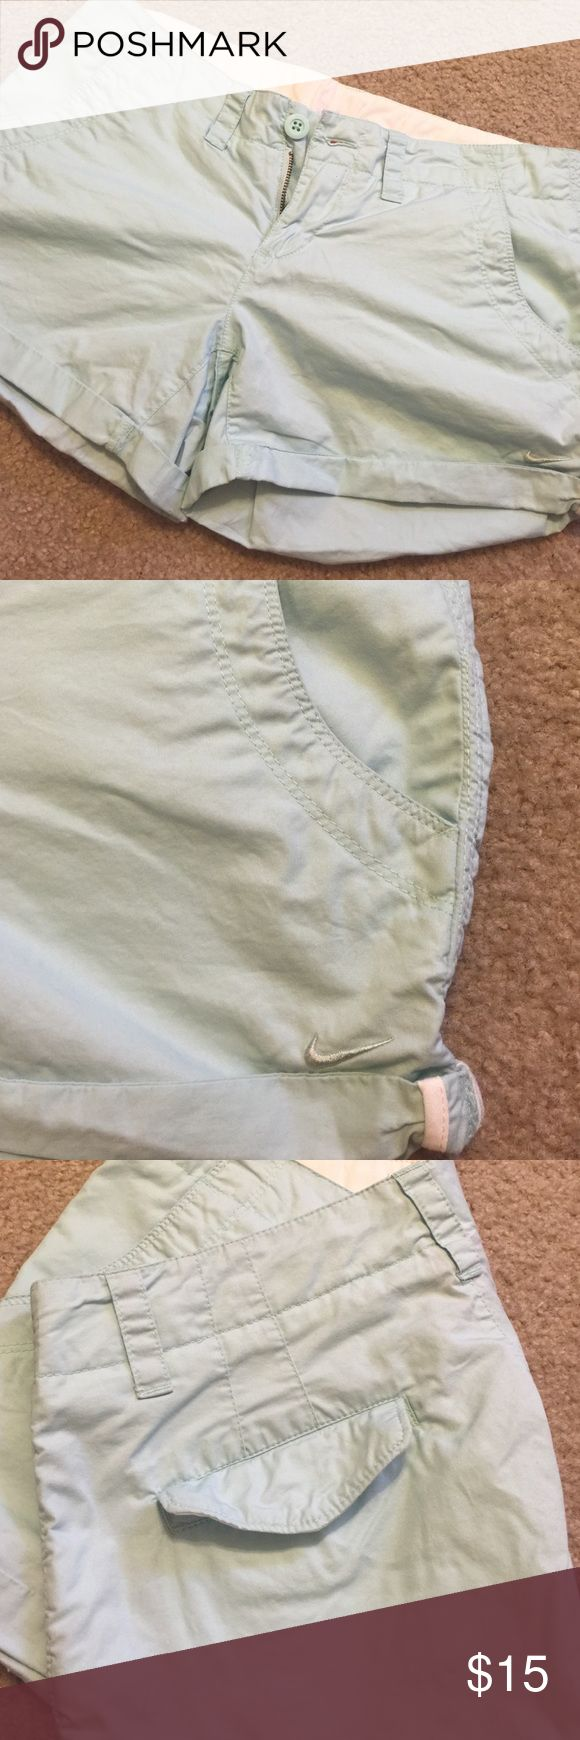 Women's Nike Mint Shorts Women's Nike Mint Shorts. Size 8 but fit closer to a 6 in my opinion. Awesome shorts. No issues. Nike Shorts